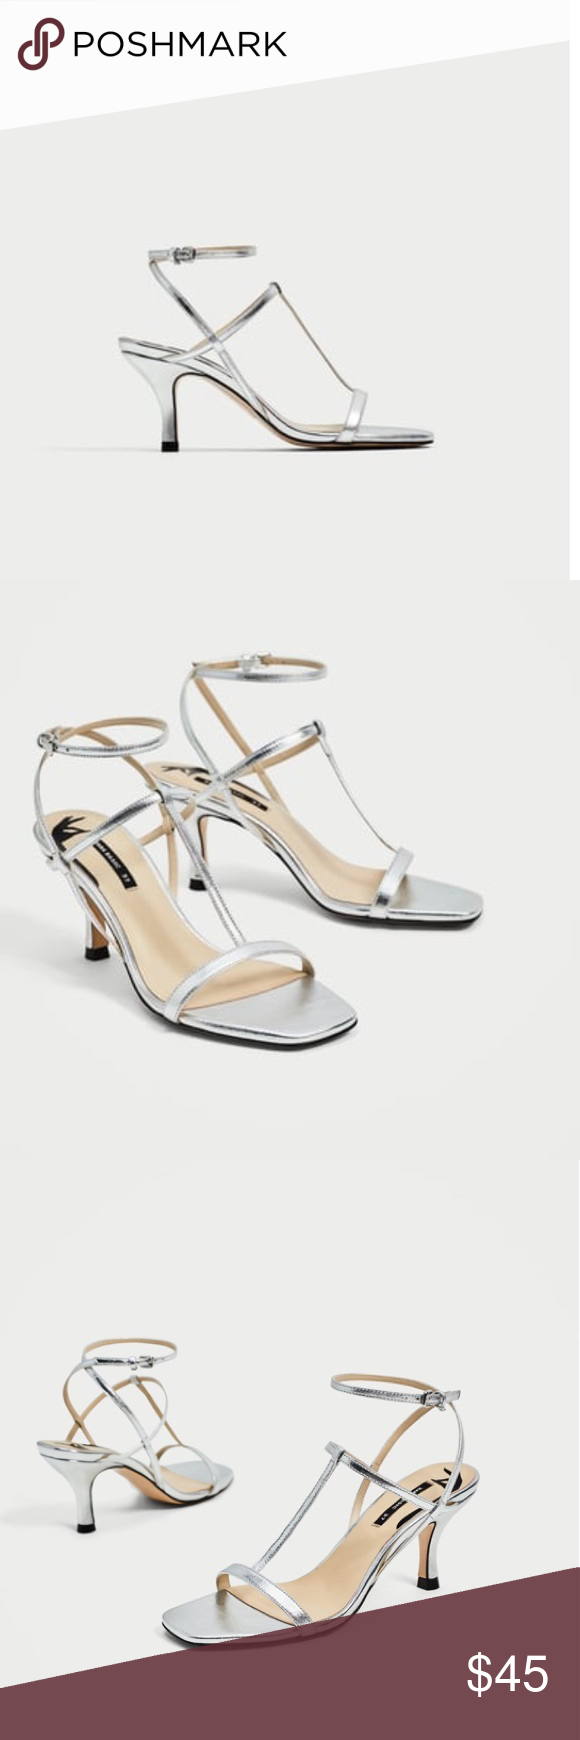 Zara Silver Leather T Strap Sandals Size 8 Zara Silver Leather T Strap Sandals Size 8 Brand New Without Box Size 8 Us Size 39 E T Strap Sandals Kitten Heel Sandals Silver Kitten Heels